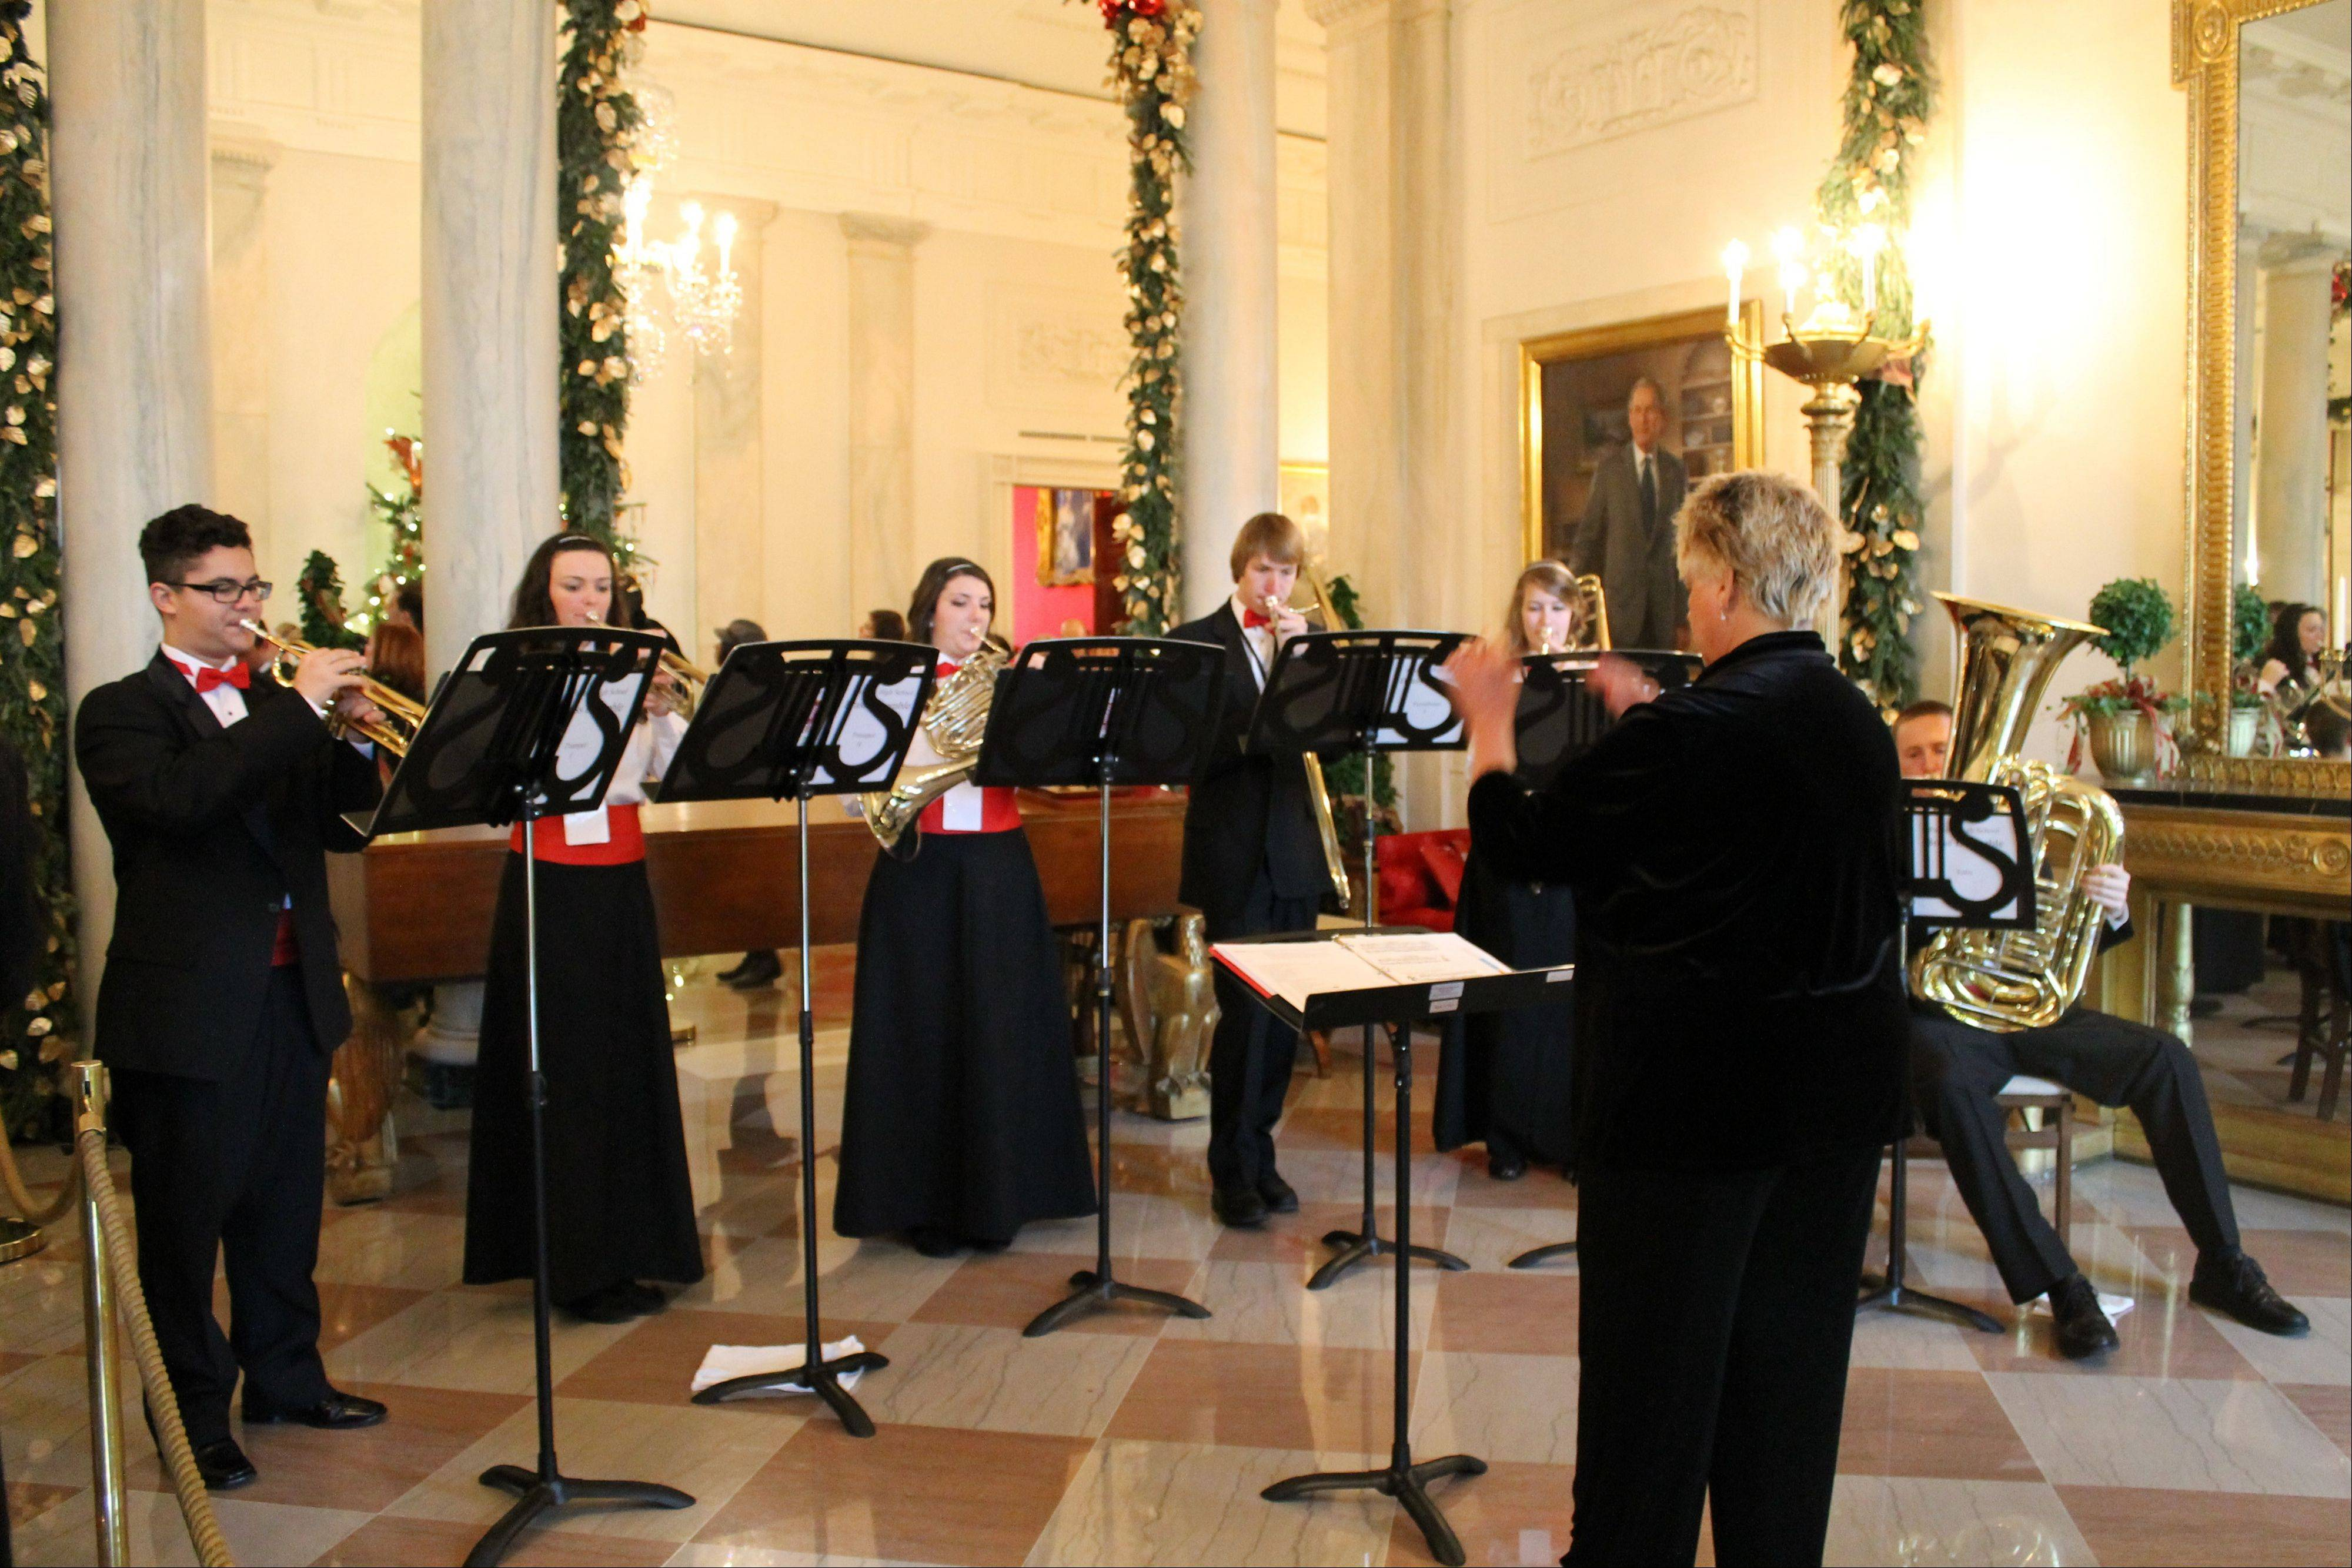 Trumpet players Jonathon Szabo and Natalie Stevens, French horn player Jenna Campbell, trombone players Joe VanBladel and Kirsten Eissman, and tuba player Ken Cervenka of the Palatine High School Brass Ensemble perform Saturday at the White House under the direction of conductor Raeleen Horn.